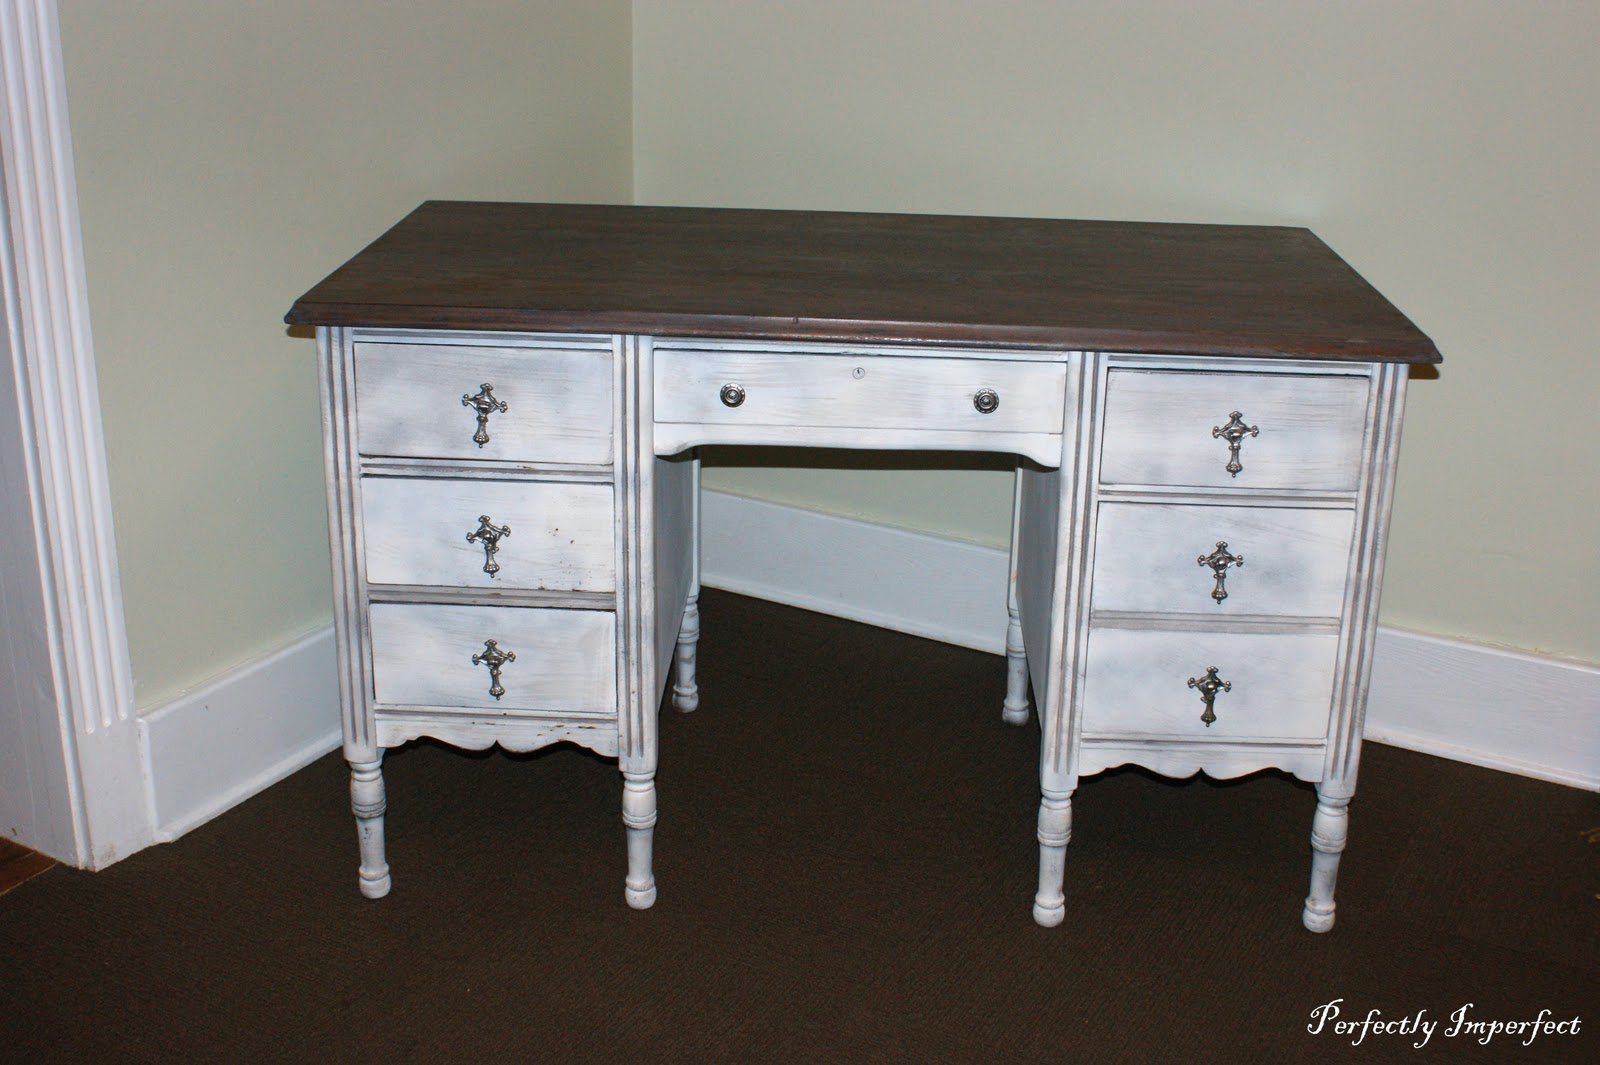 Perfect Frenchy Desk | Perfectly Imperfect™ Blog YA21